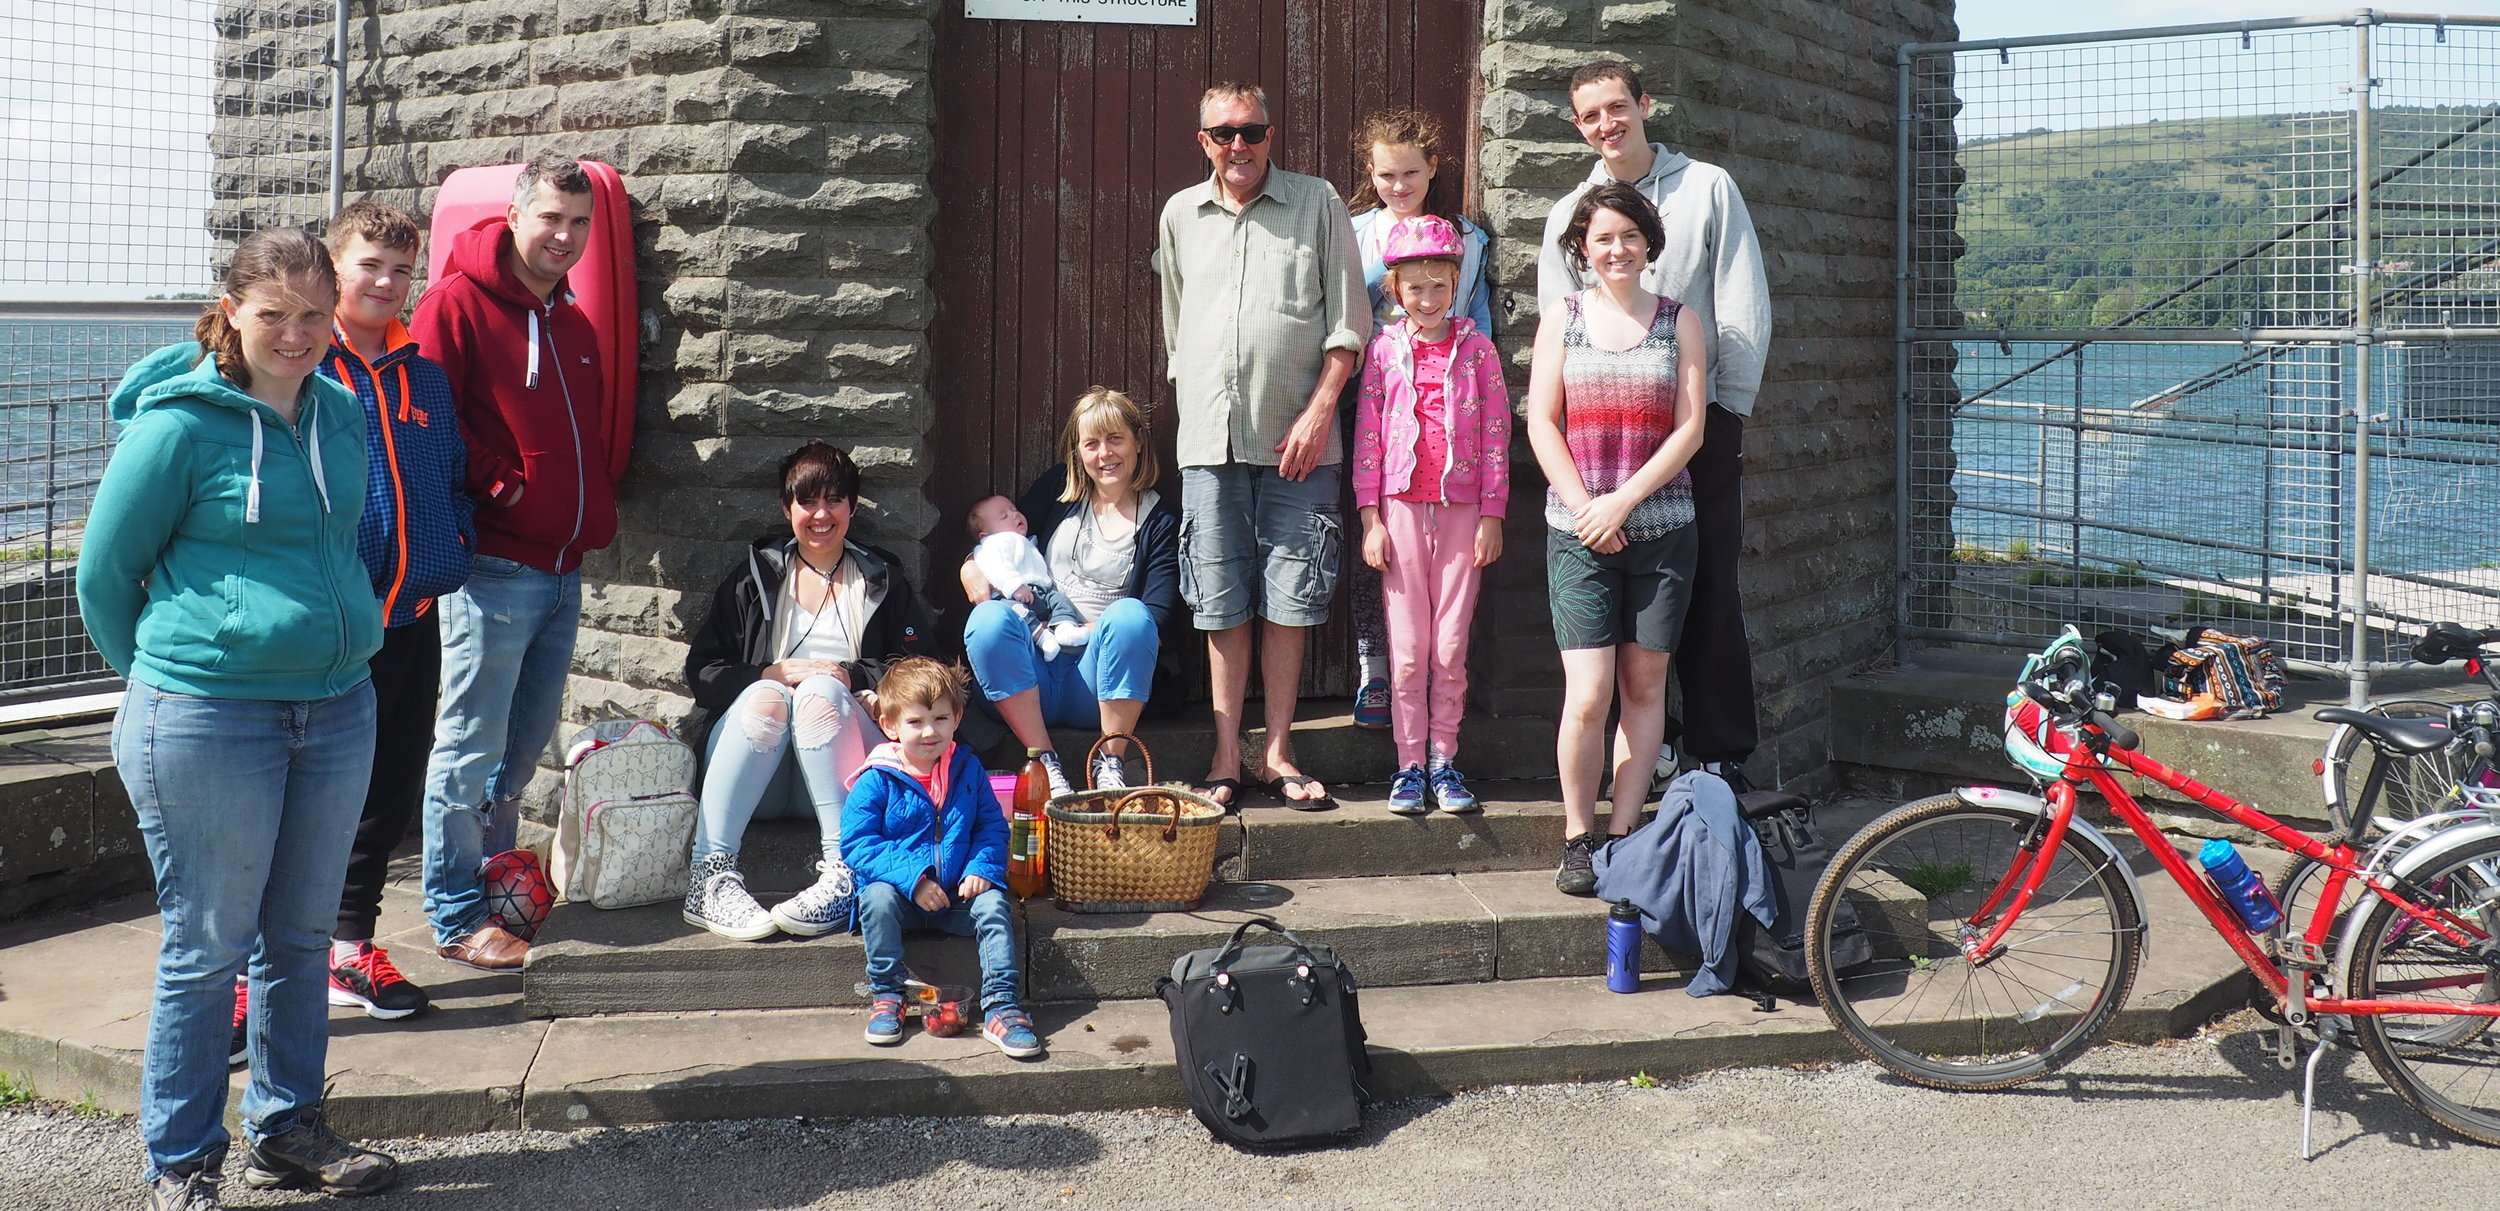 gcp  staff and families on The Strawberry Line